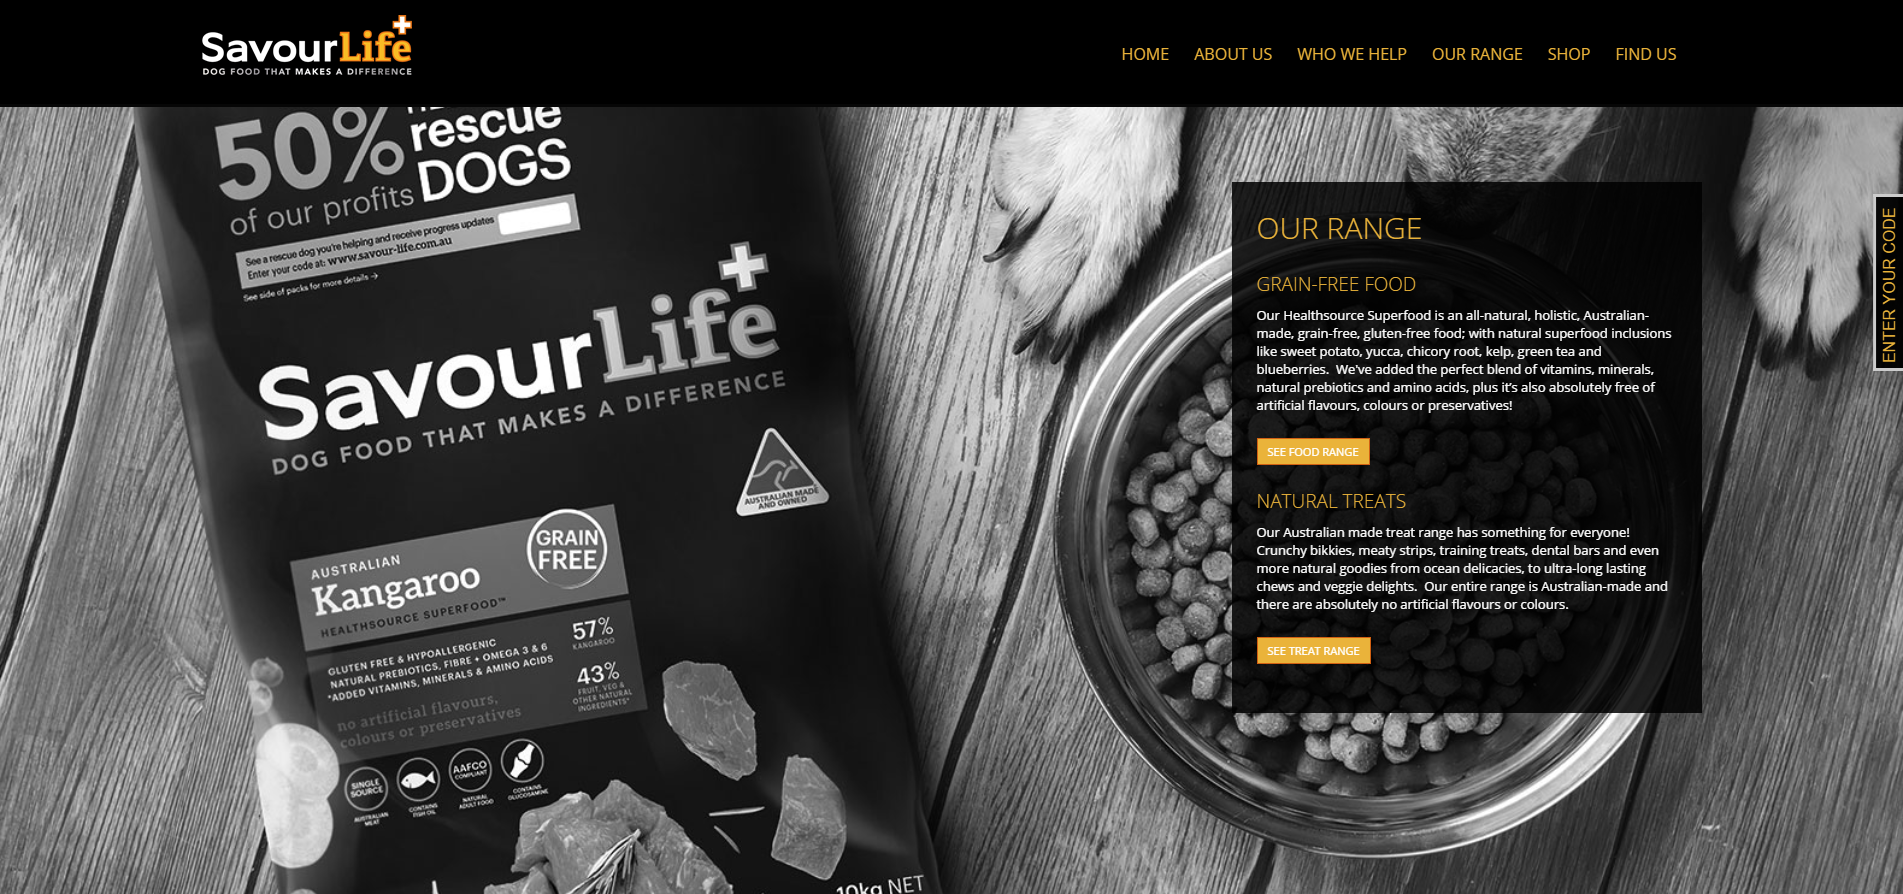 Savourlife Website Design